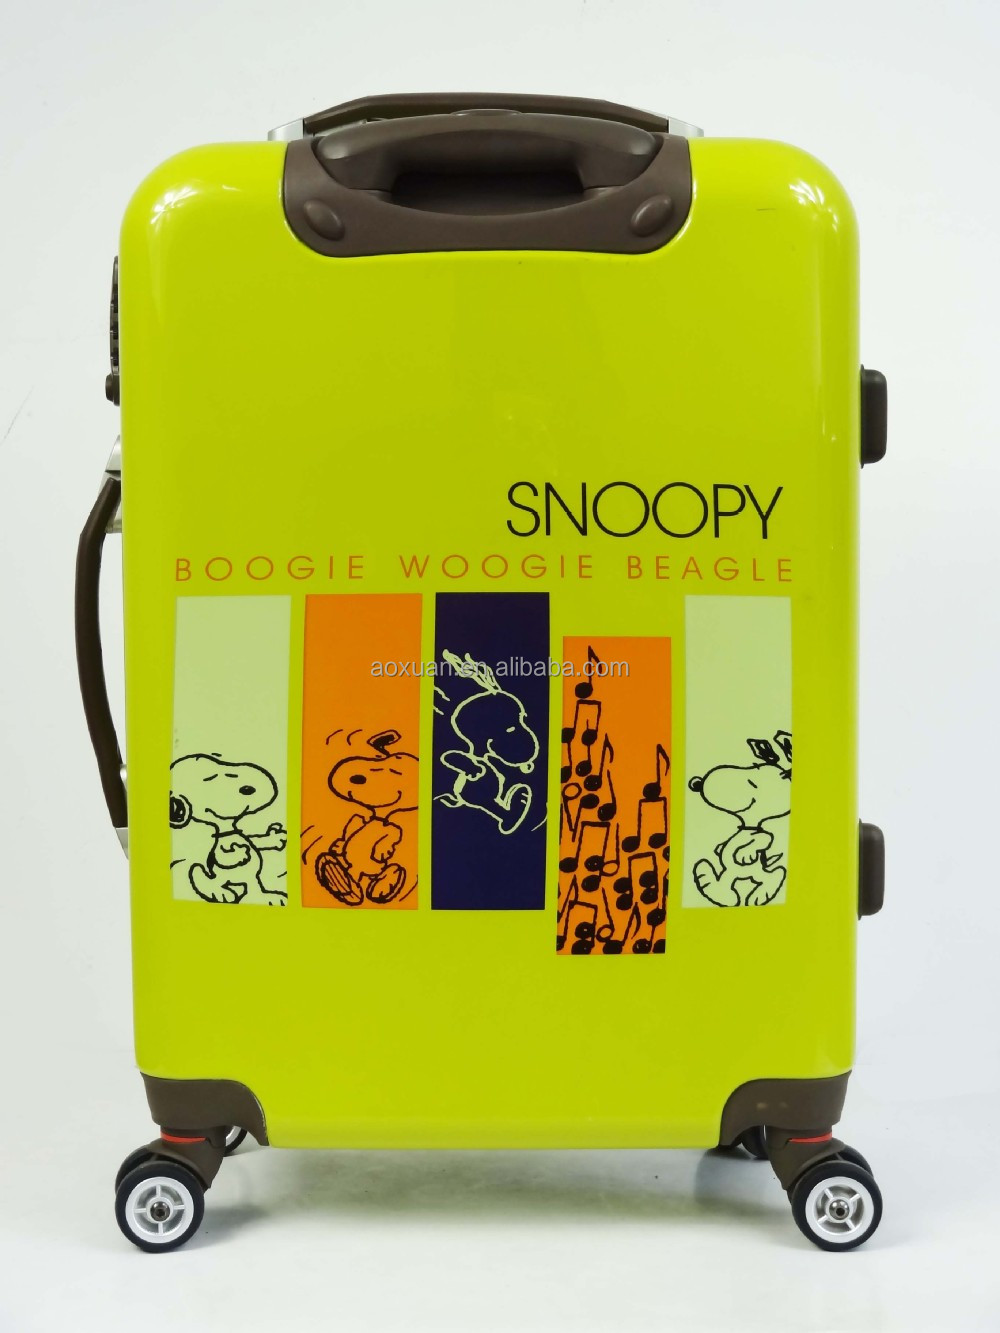 abs pc luggage bag Alibaba Shanghai Factory travel luggage bag snoopy luggage